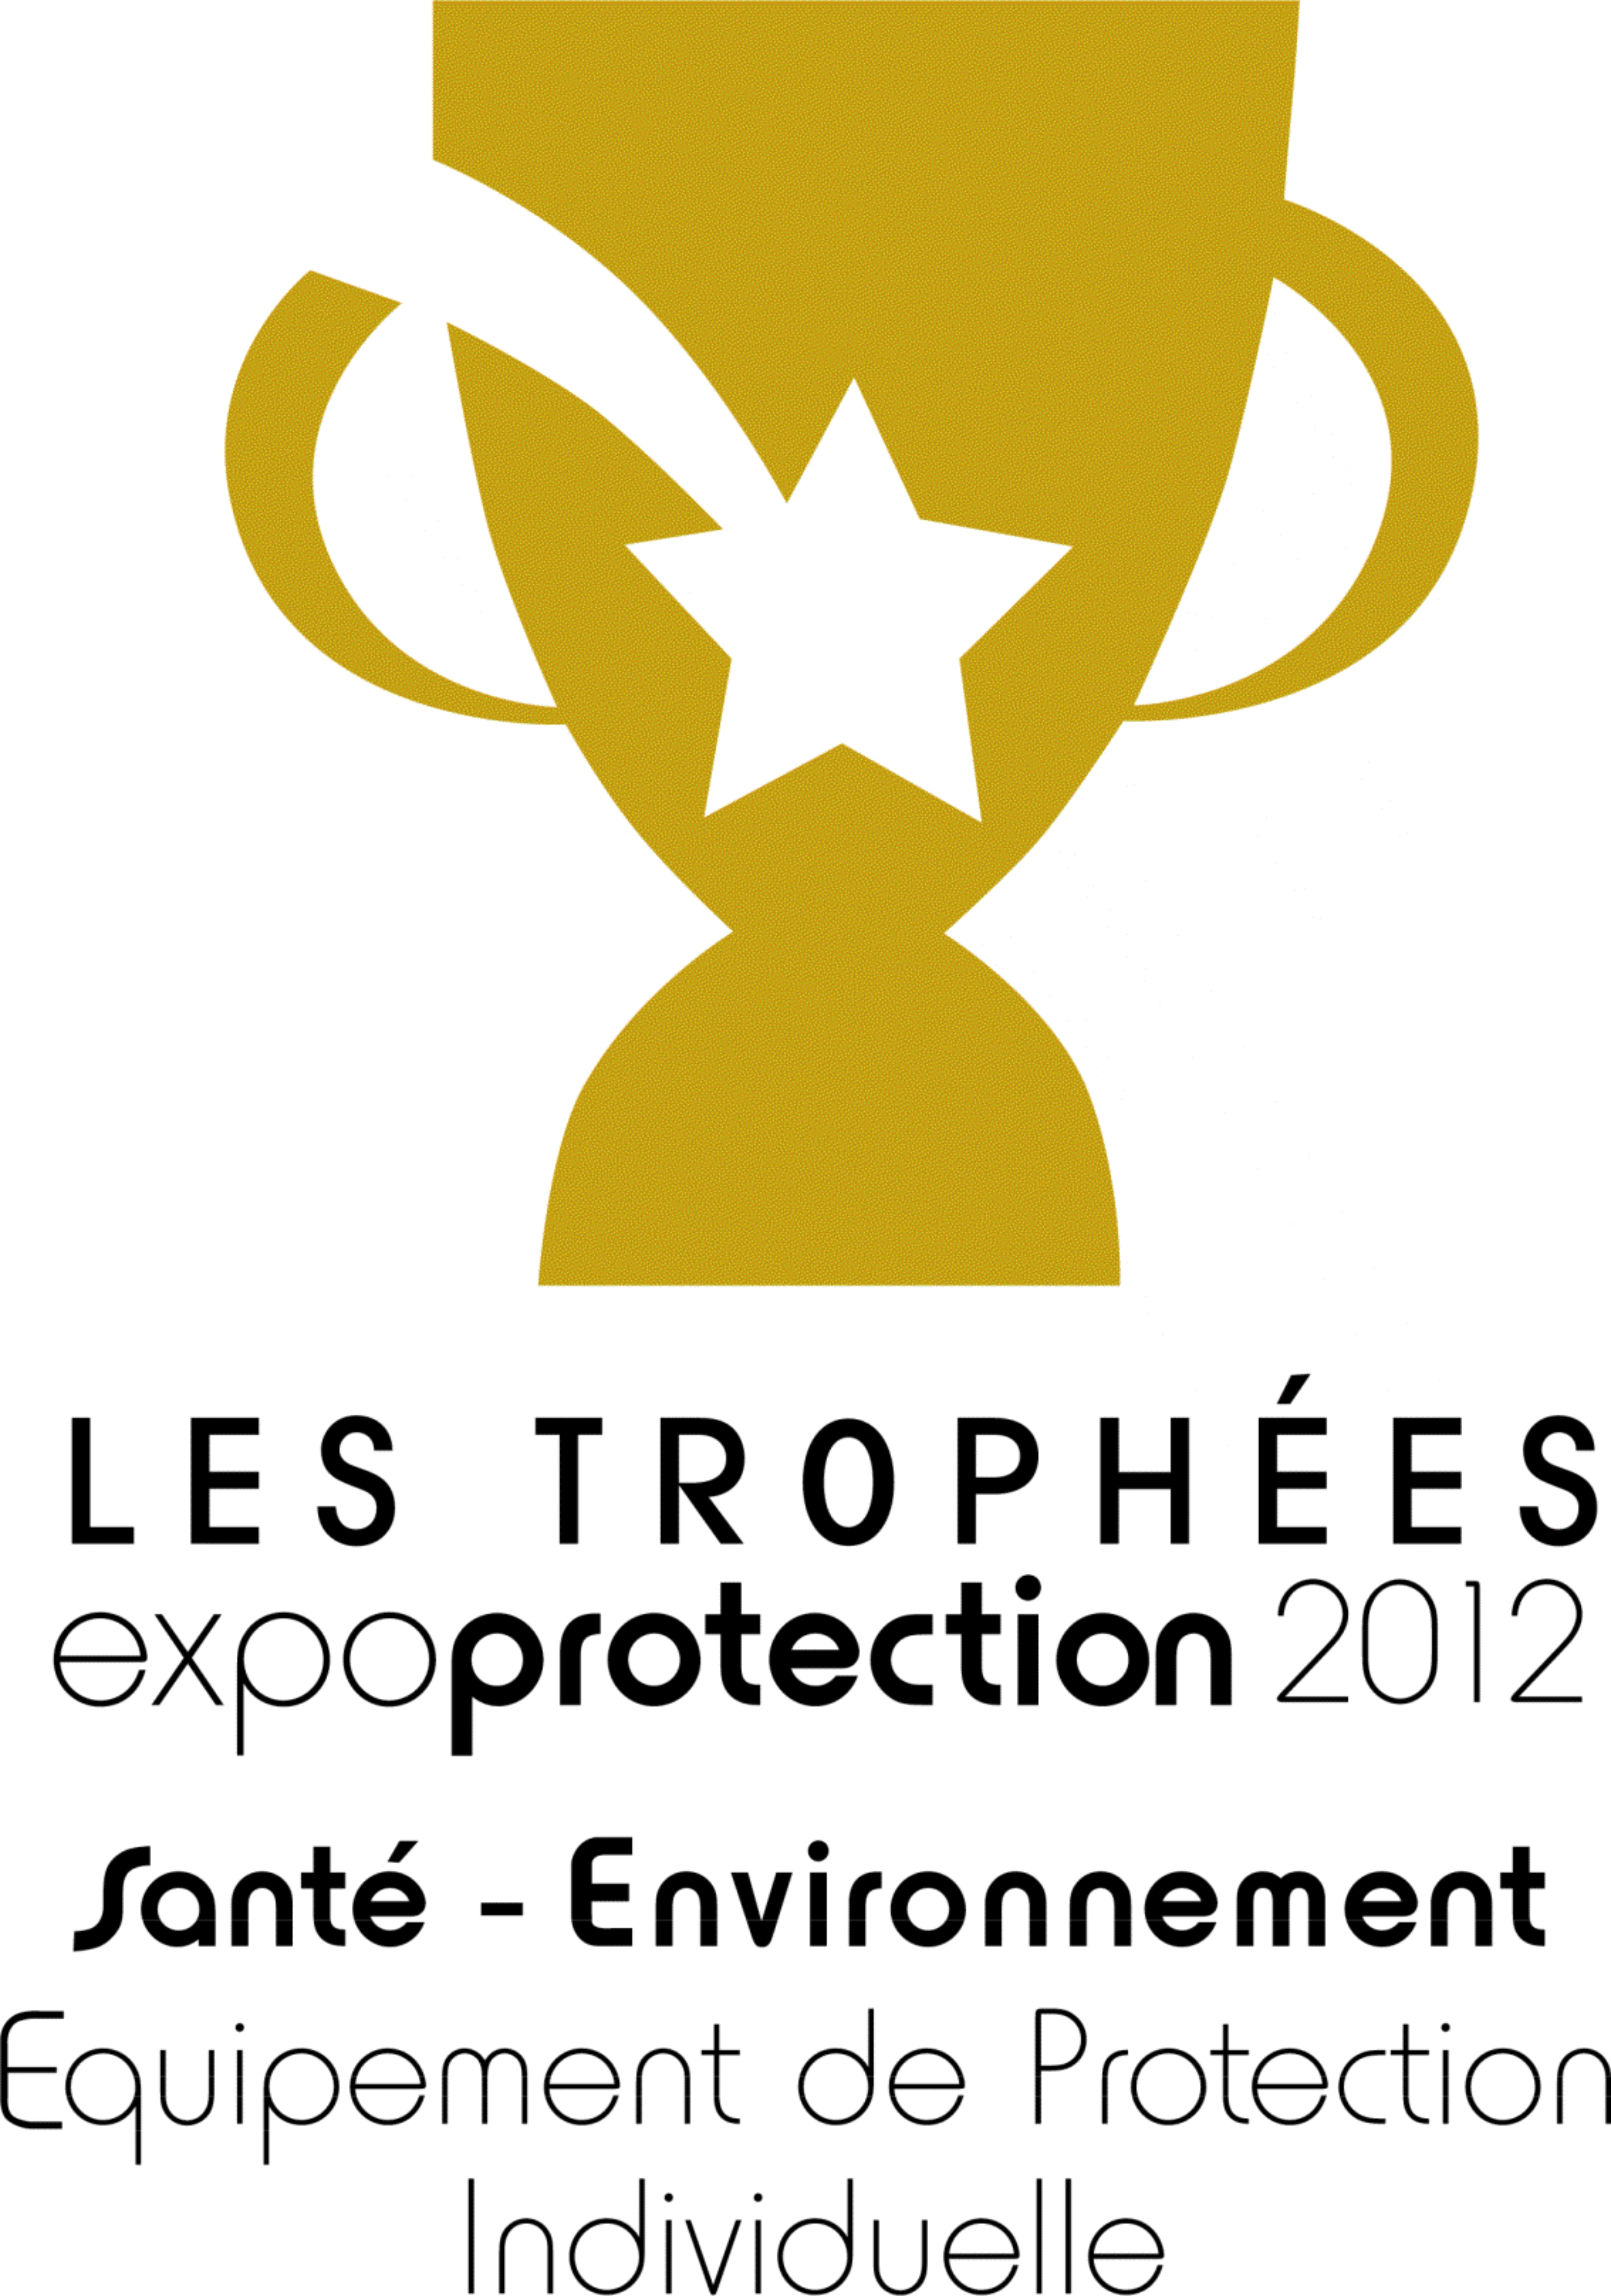 Mottok pris ved Les Trophées Expo Protection i 2012